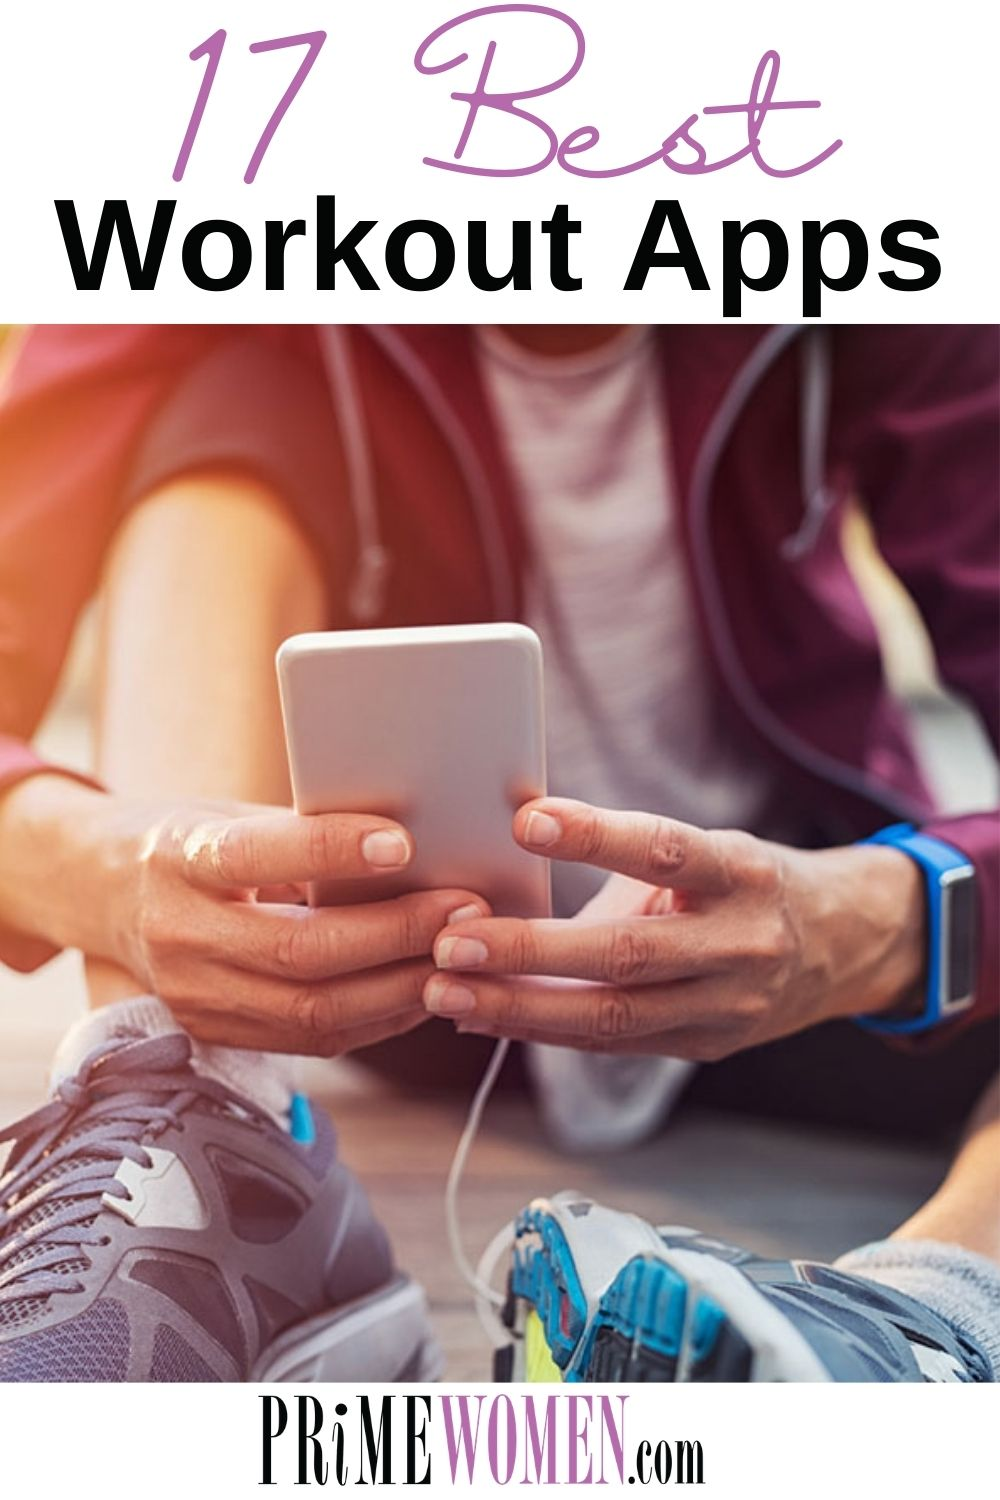 17 Best Workout Apps